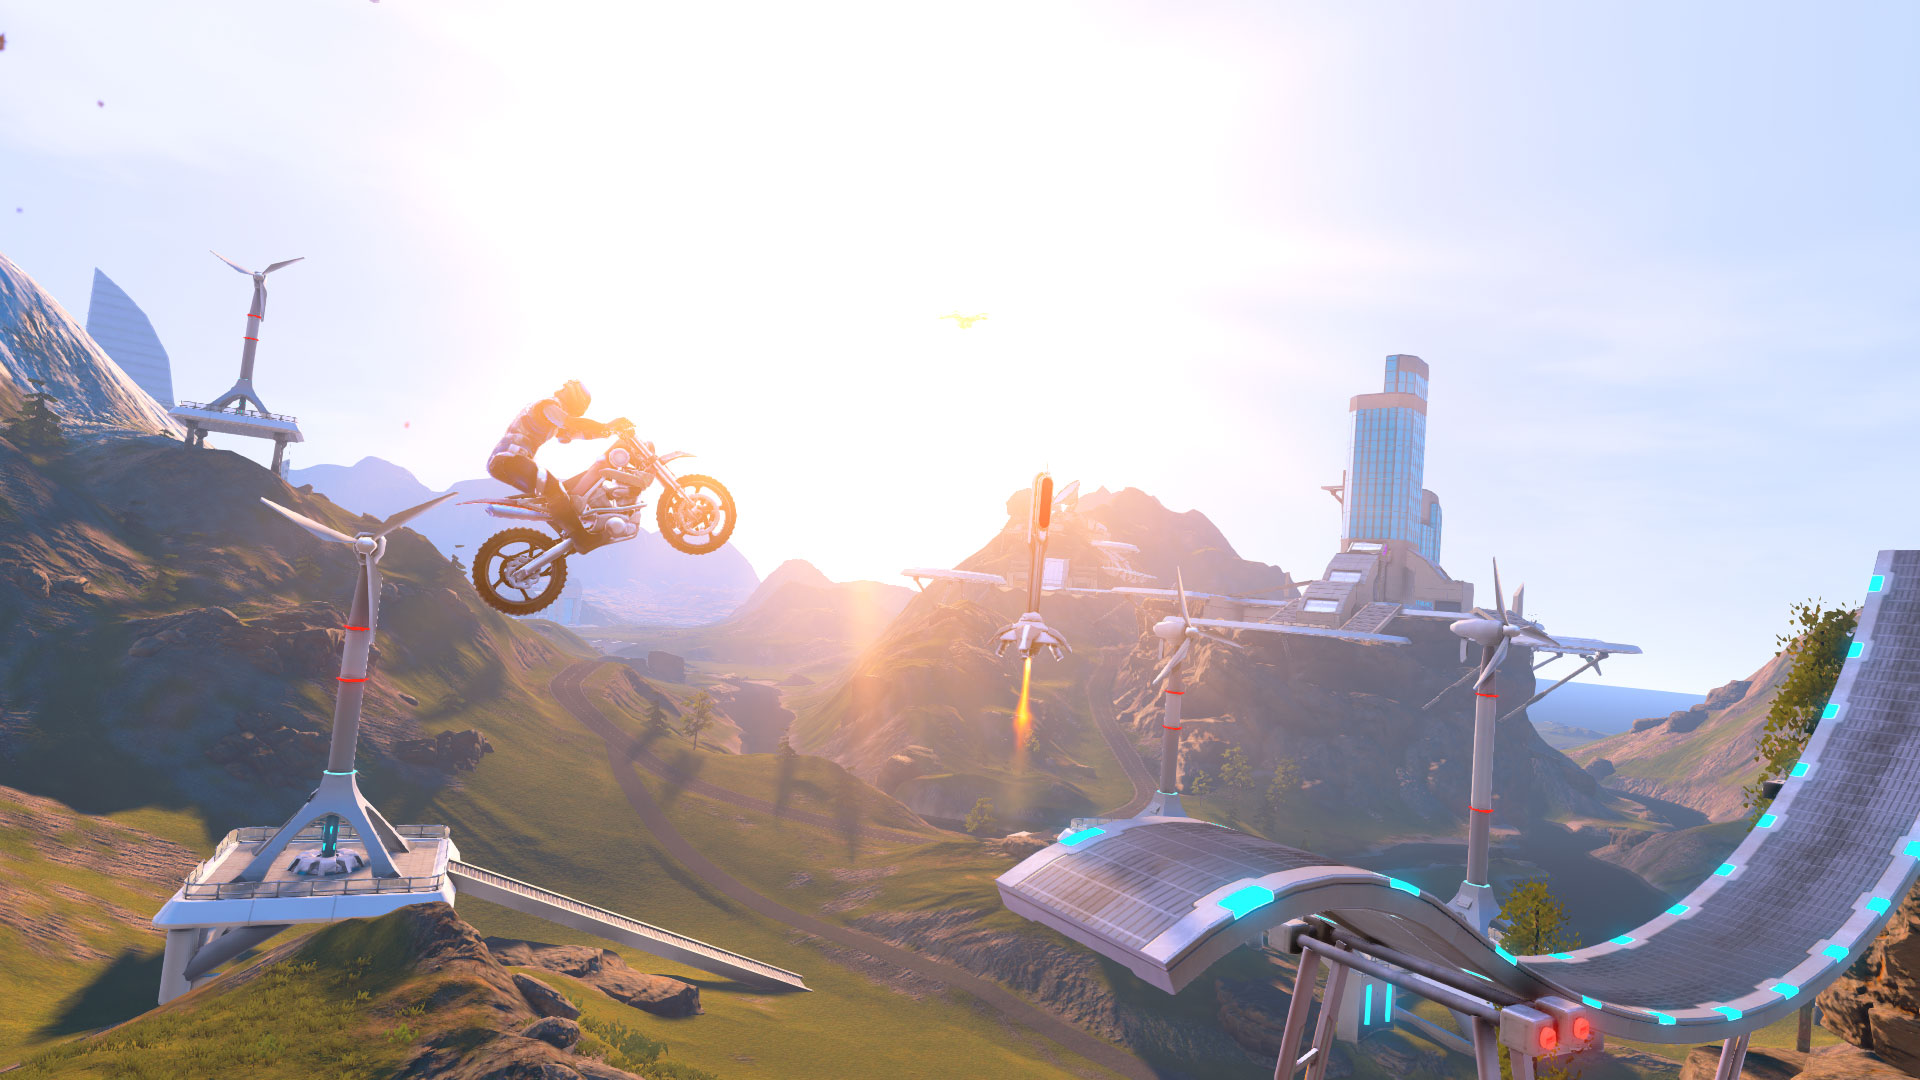 Trials Fusion Backgrounds, Compatible - PC, Mobile, Gadgets| 1920x1080 px